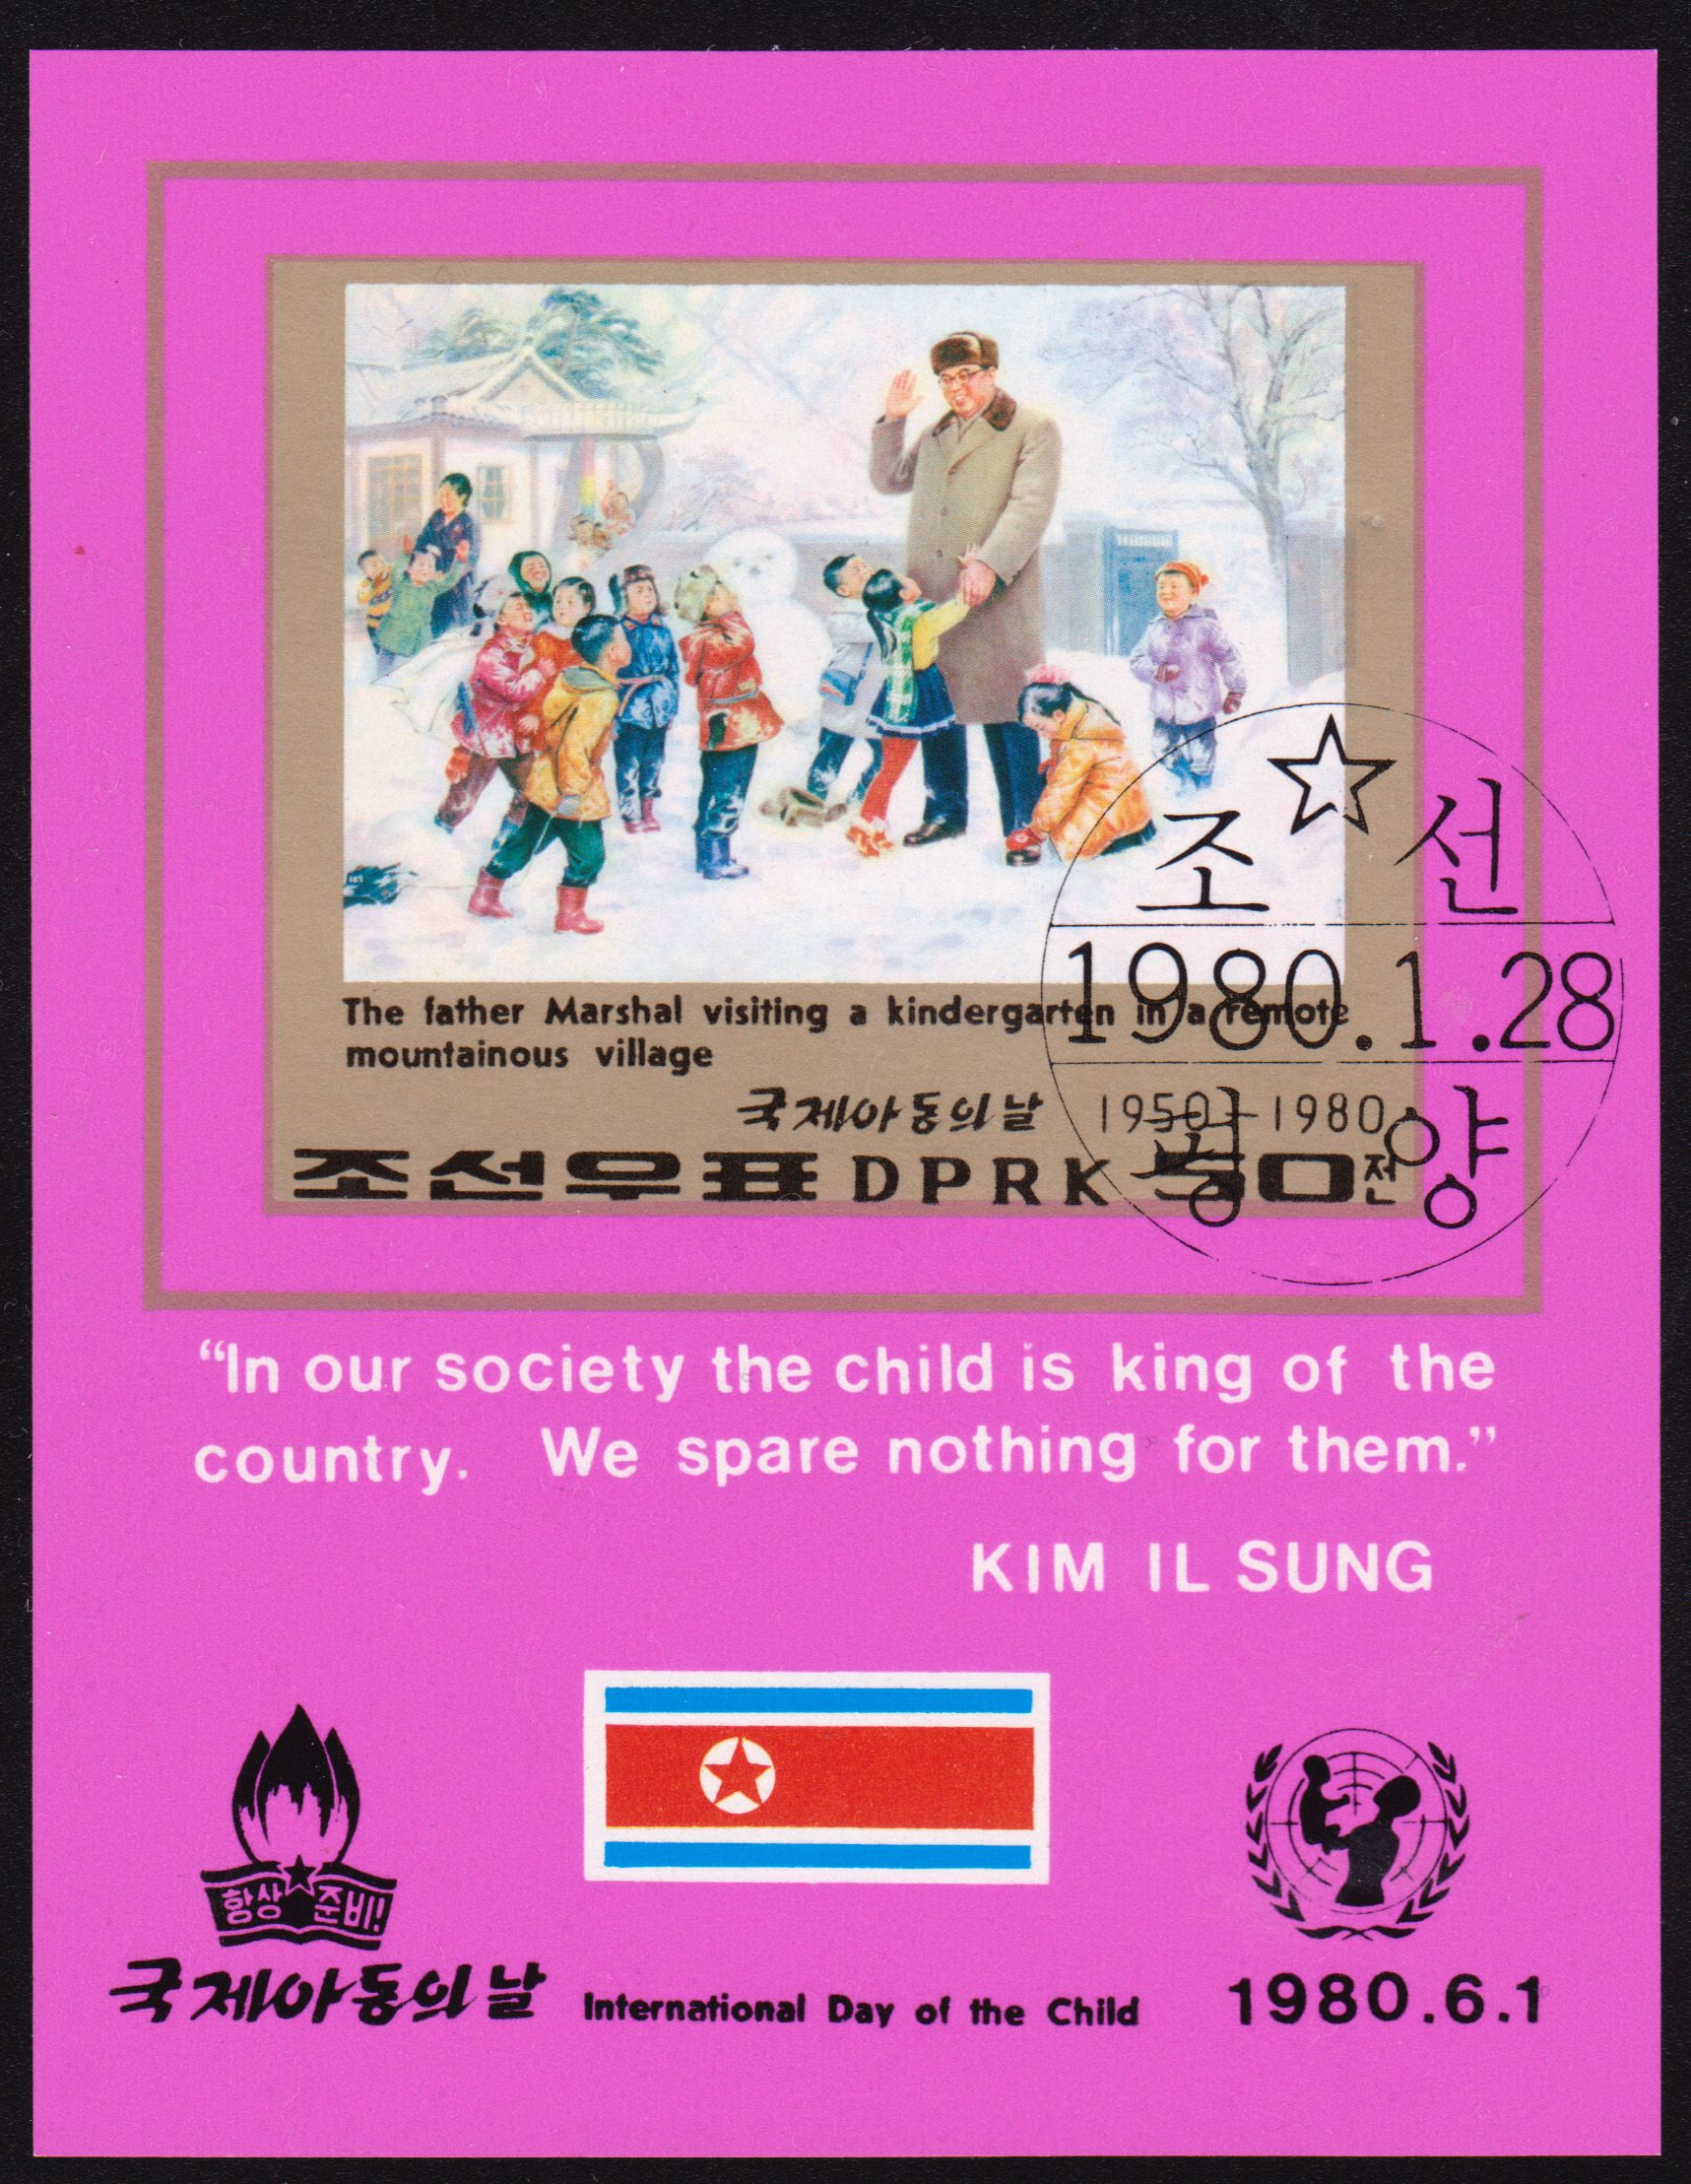 Kim Il Sung talking about starving children  North Korea, 1980